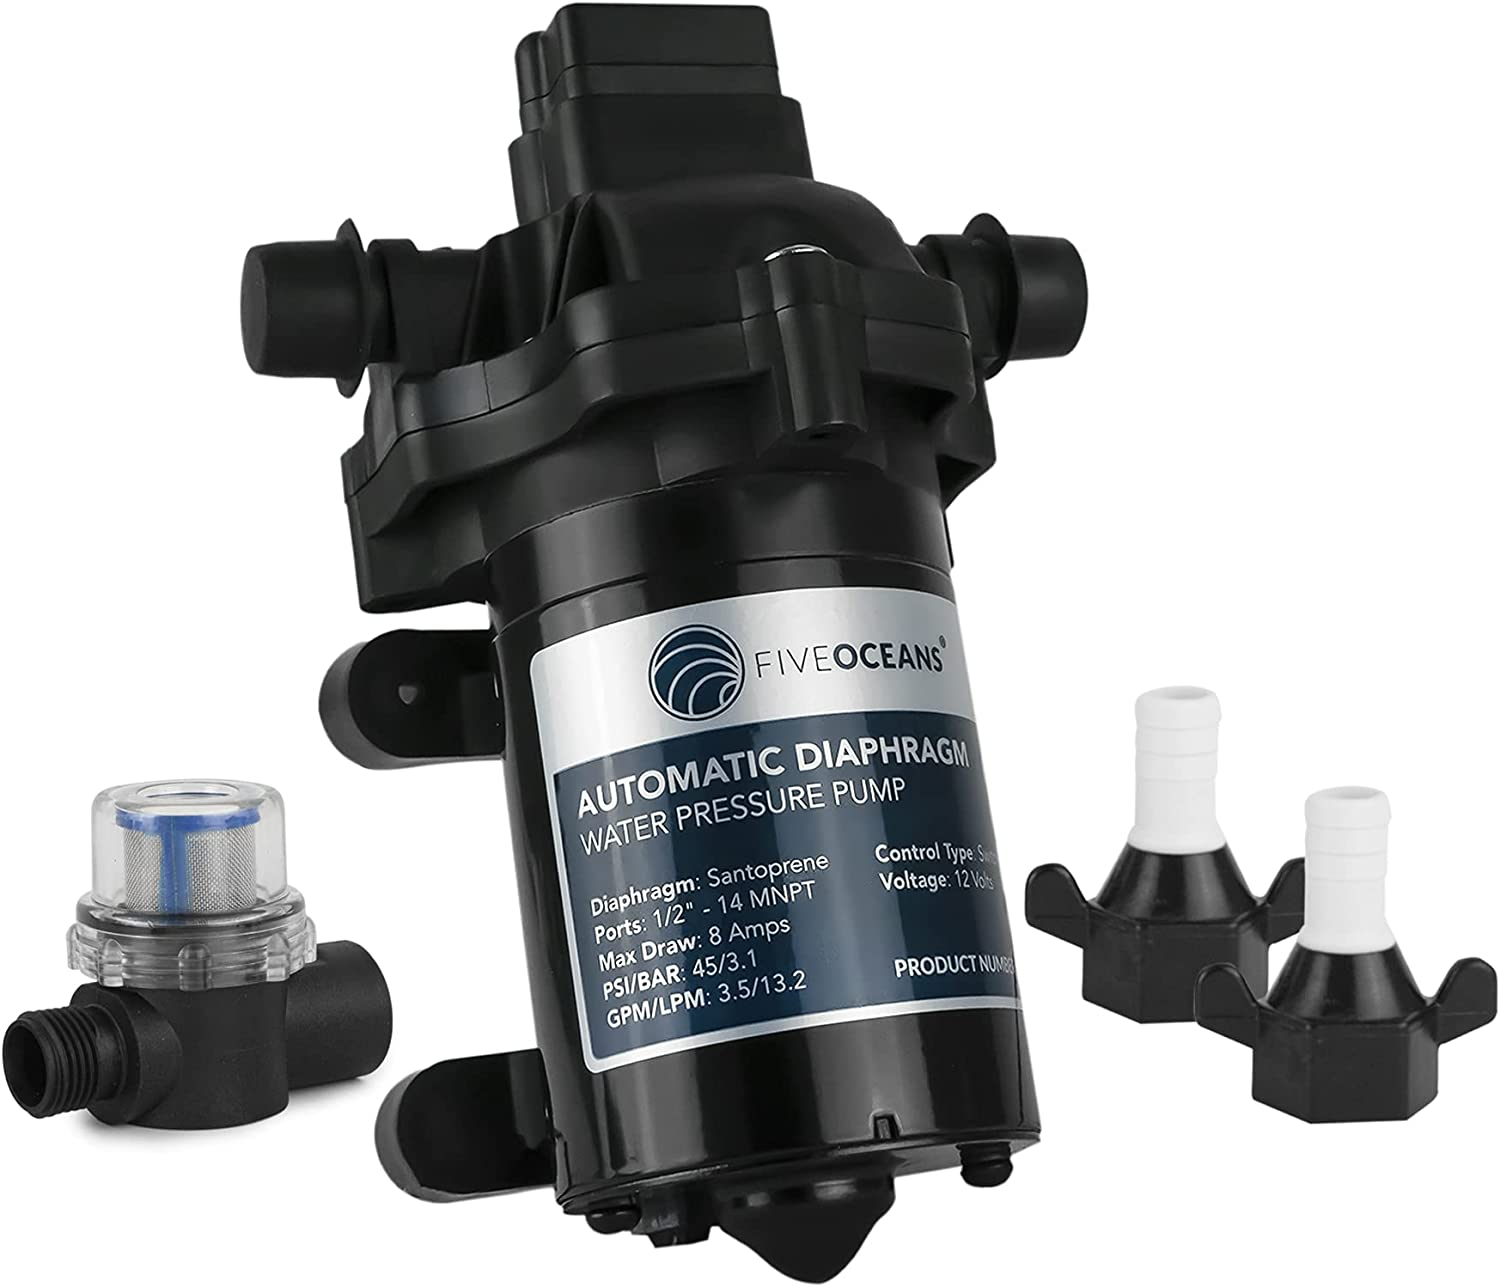 Five Oceans 12 volts Automatic Diaphragm Water Pressure Pump, Up to 45PSI / 3.0 GPM, Self-Priming, Run Dry Safe, FO-3605-1